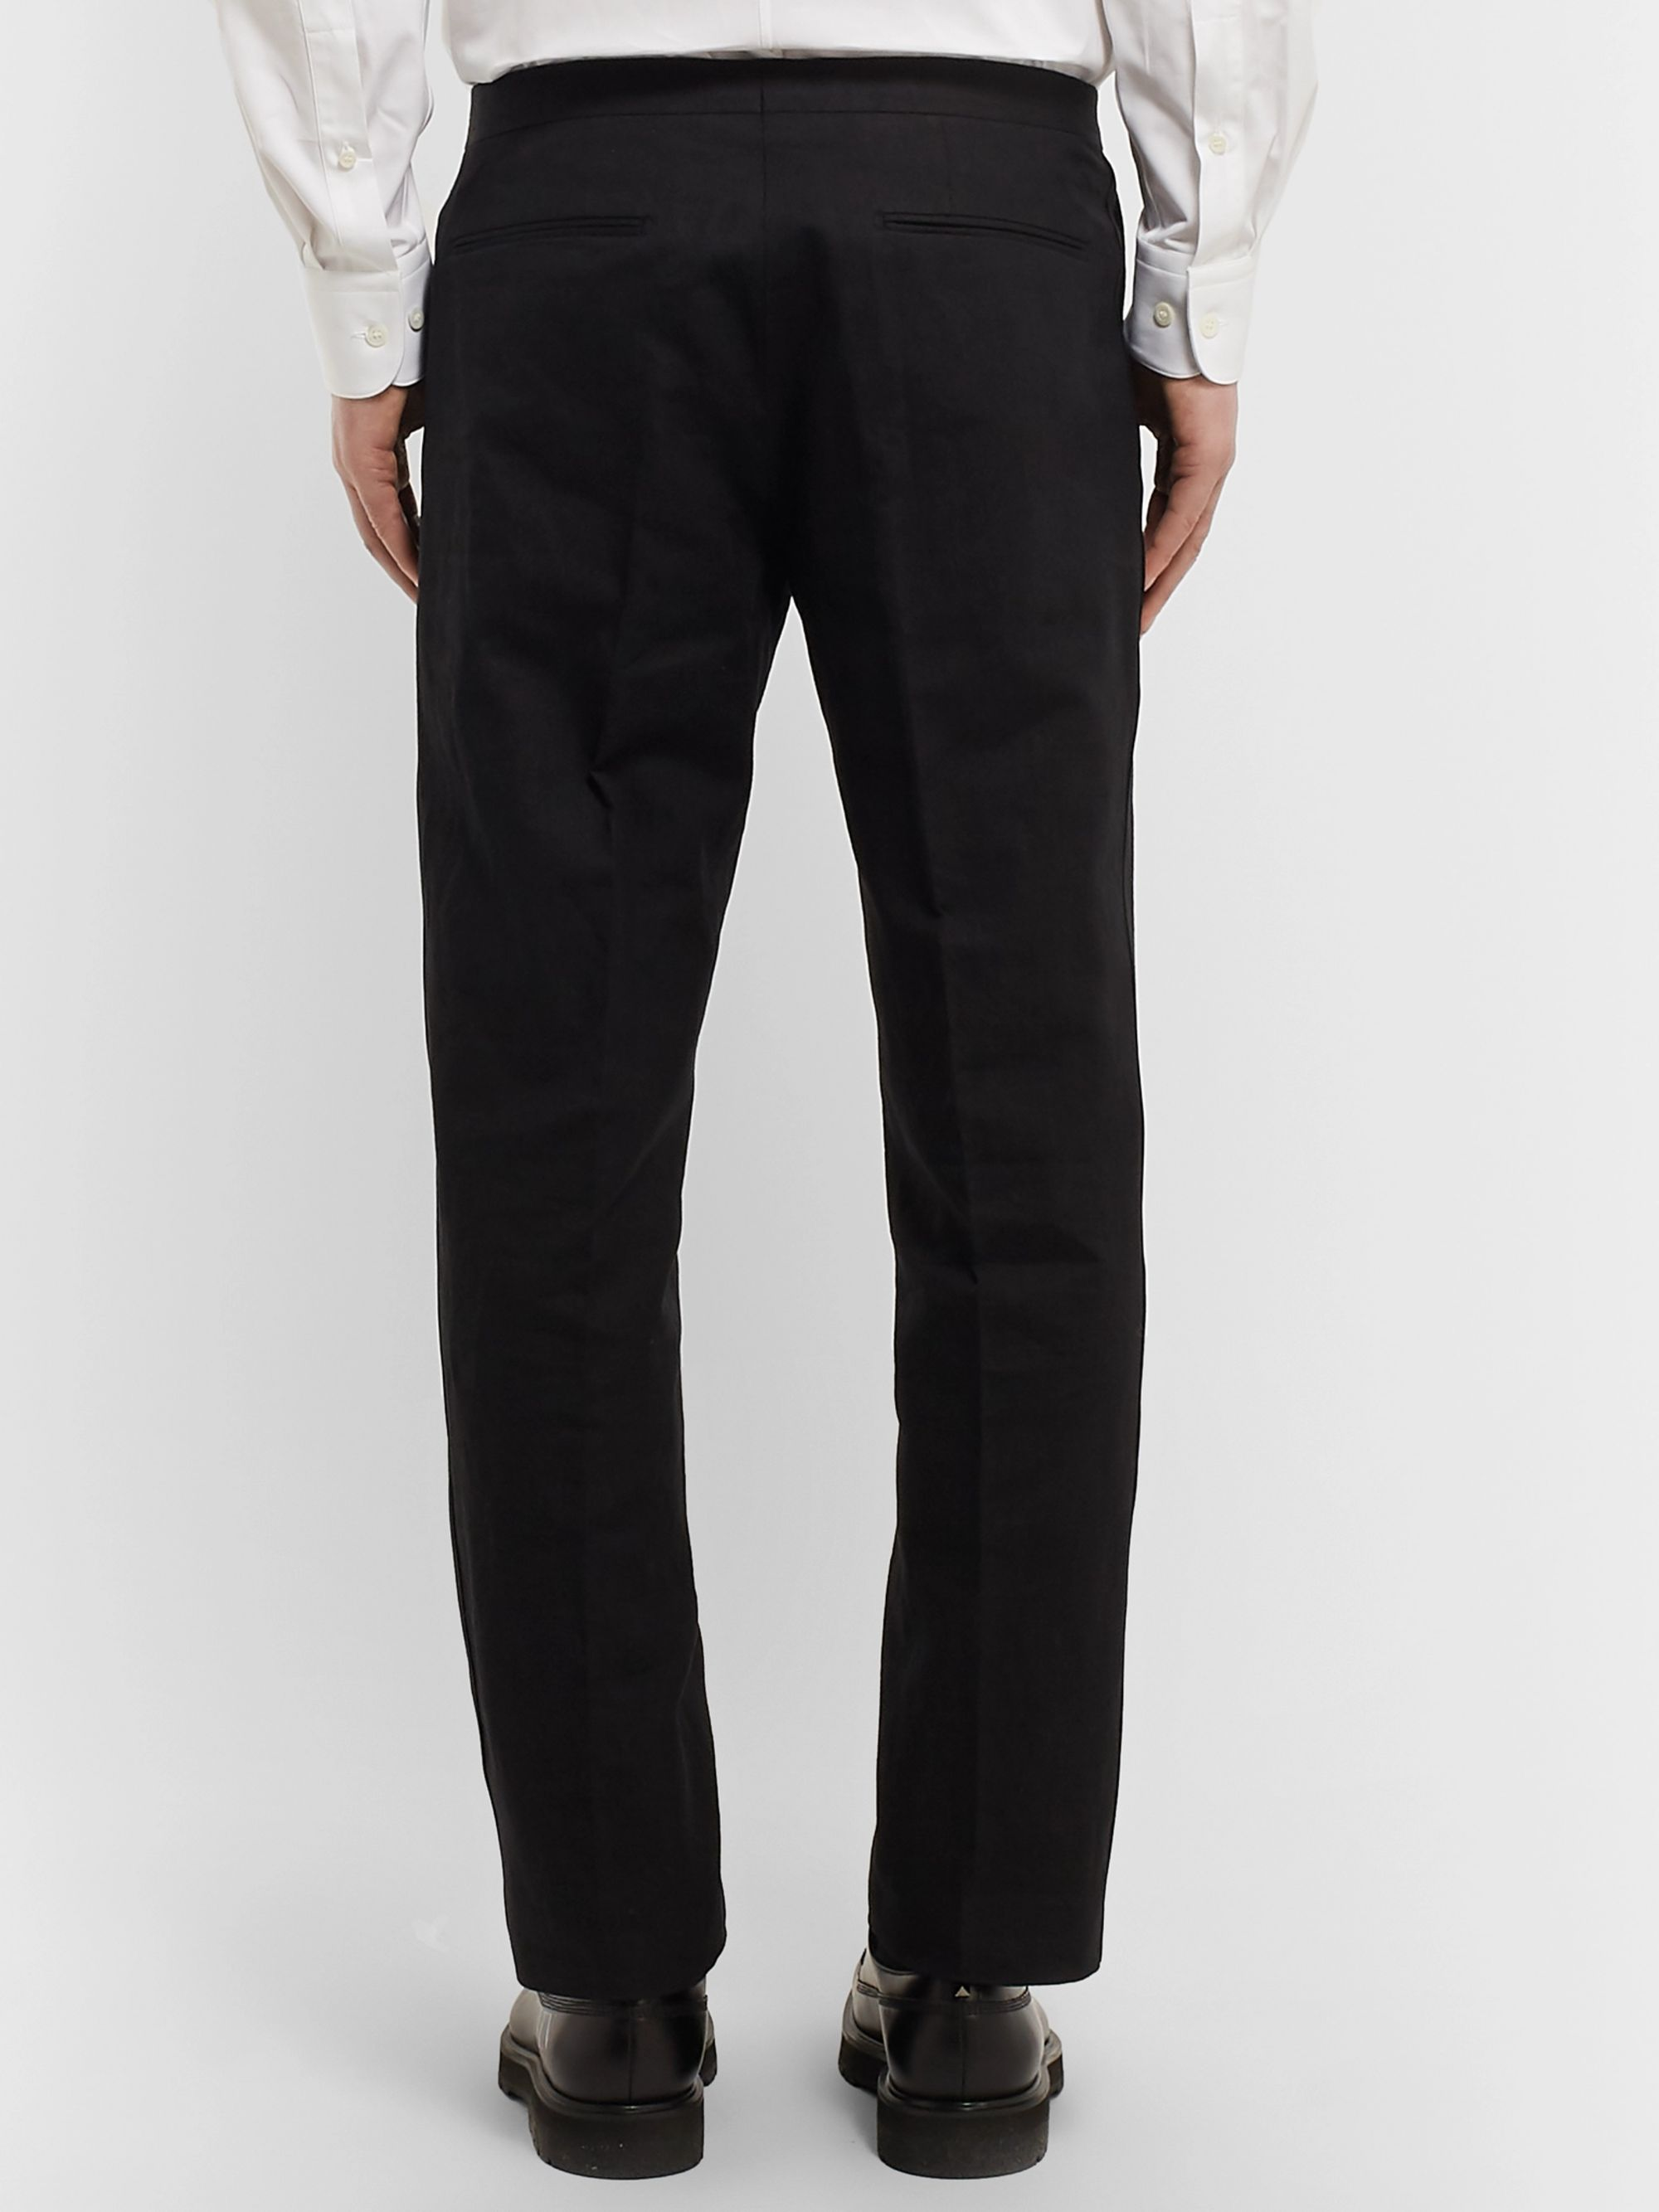 Dries Van Noten Black Slim-Fit Satin-Trimmed Linen and Cotton-Blend Tuxedo